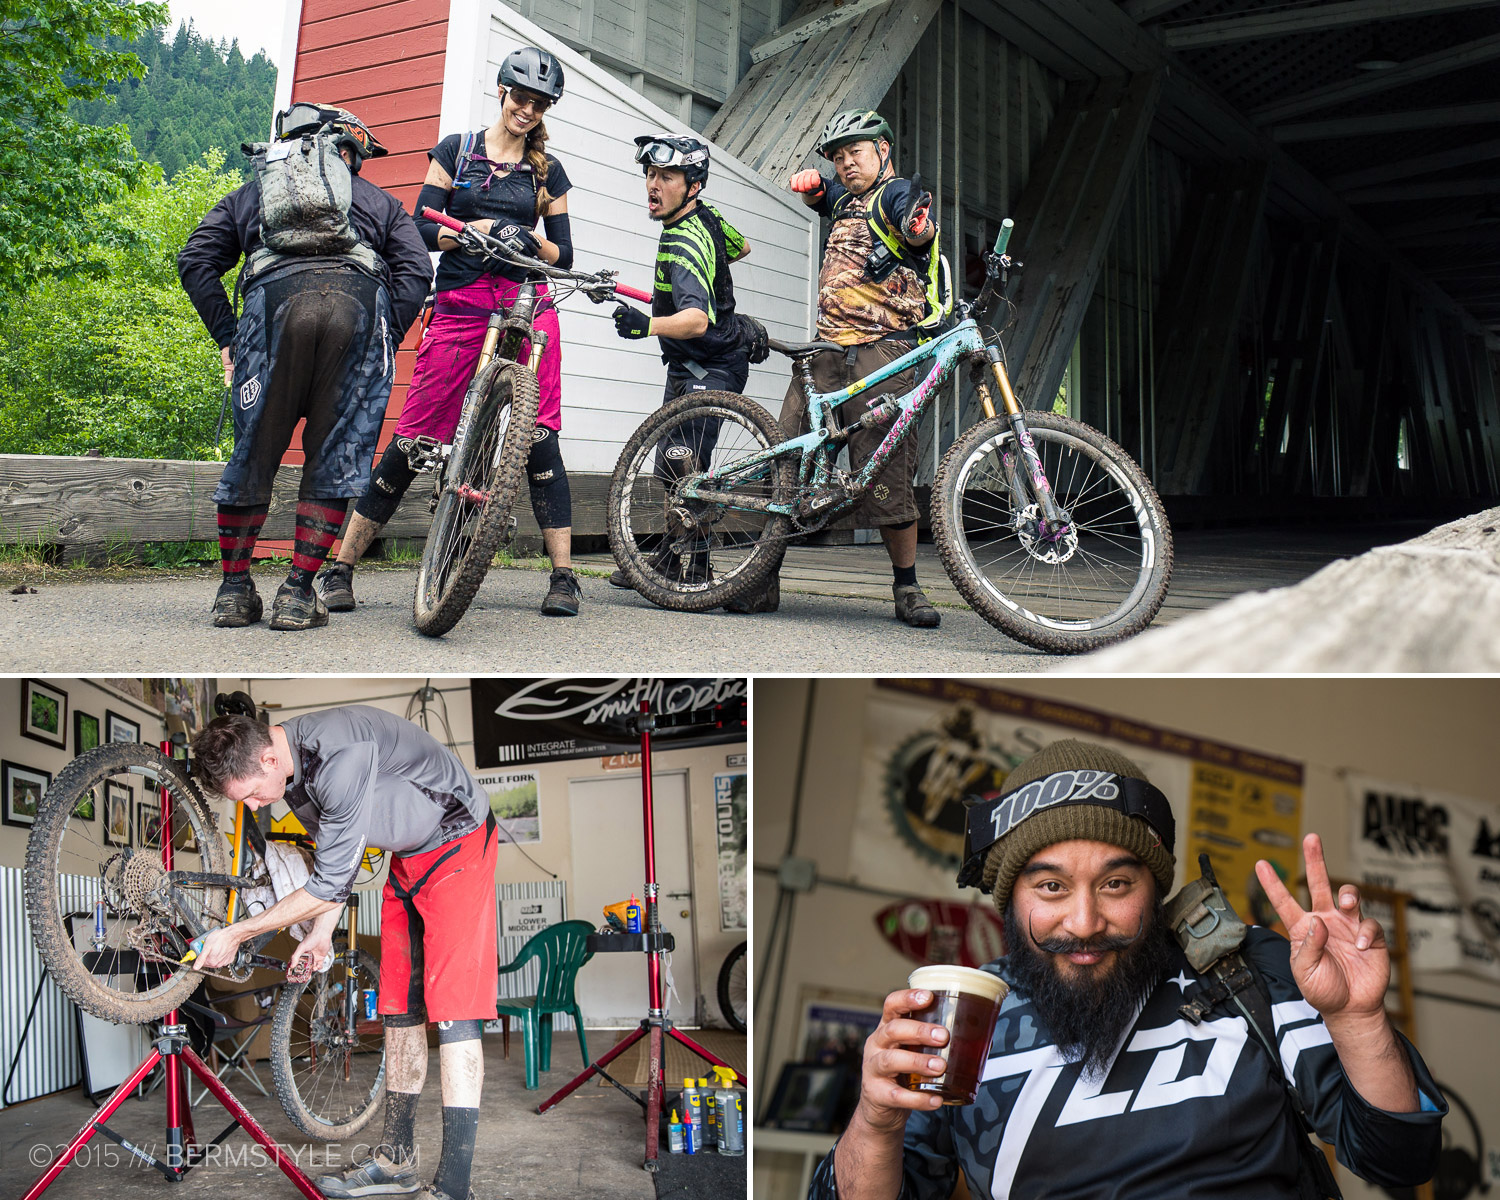 Post ride shenanigans on day two after riding the Alpine Trail.